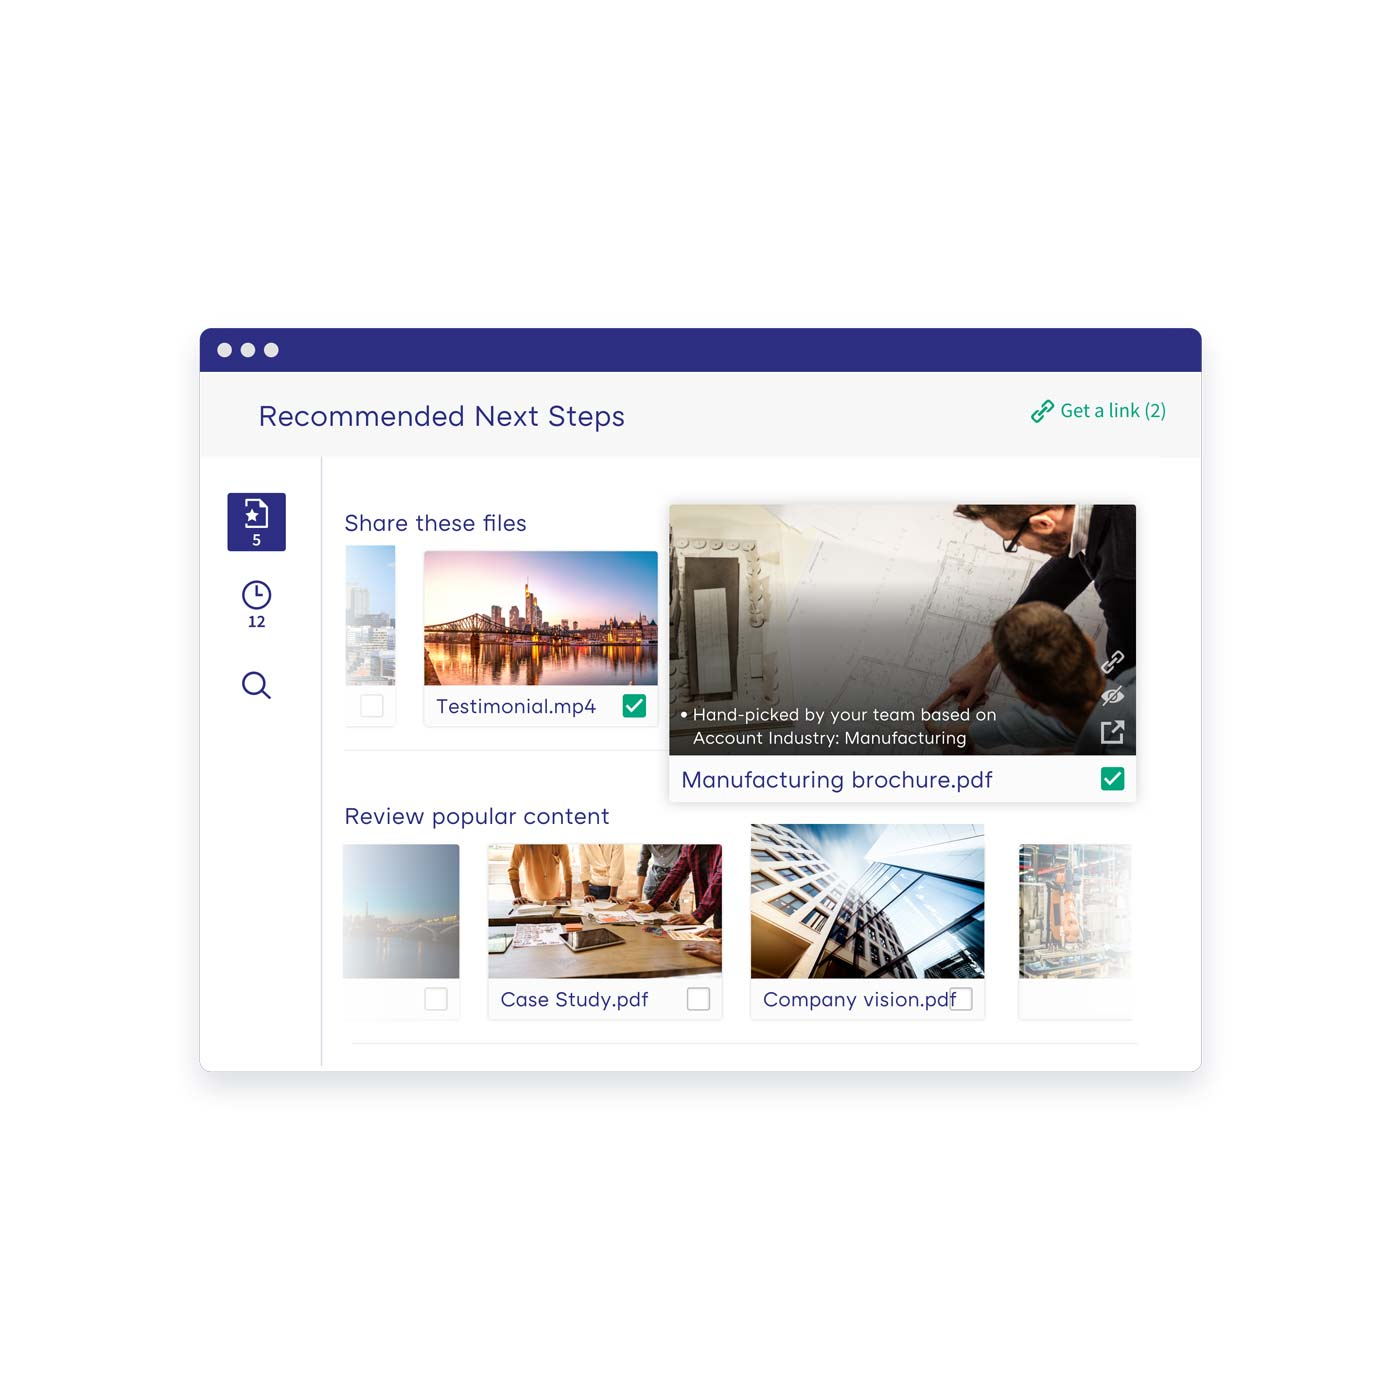 Discover content with AI-driven search and recommendations